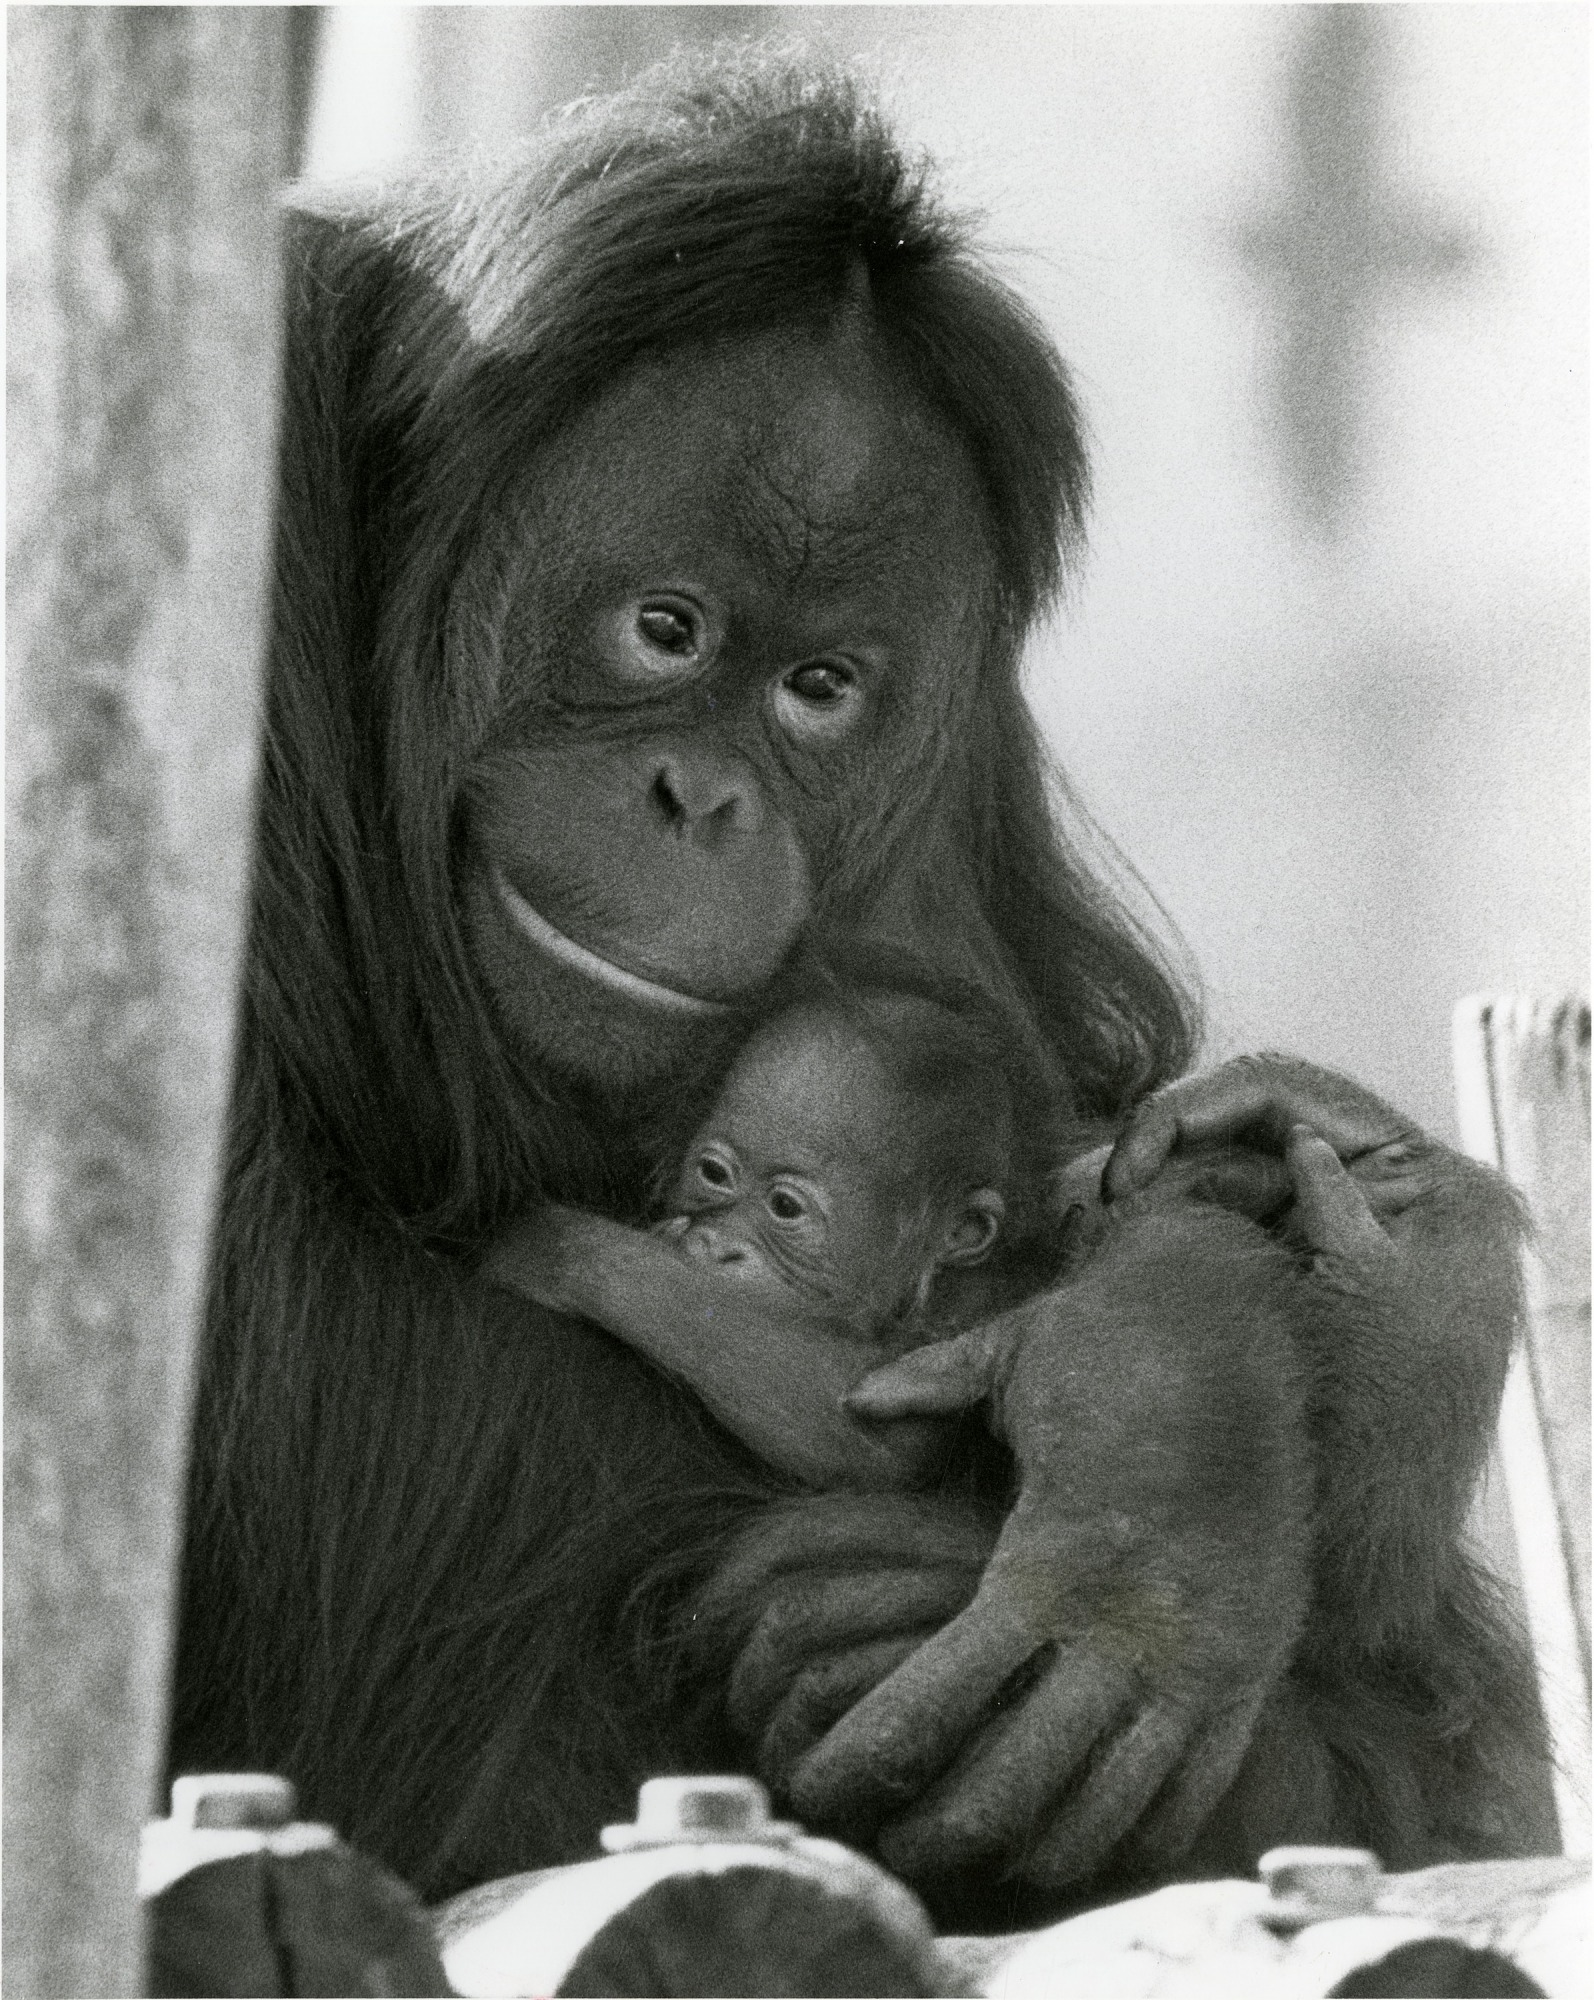 NZP's Orangutans, Bonnie and Baby Kiko